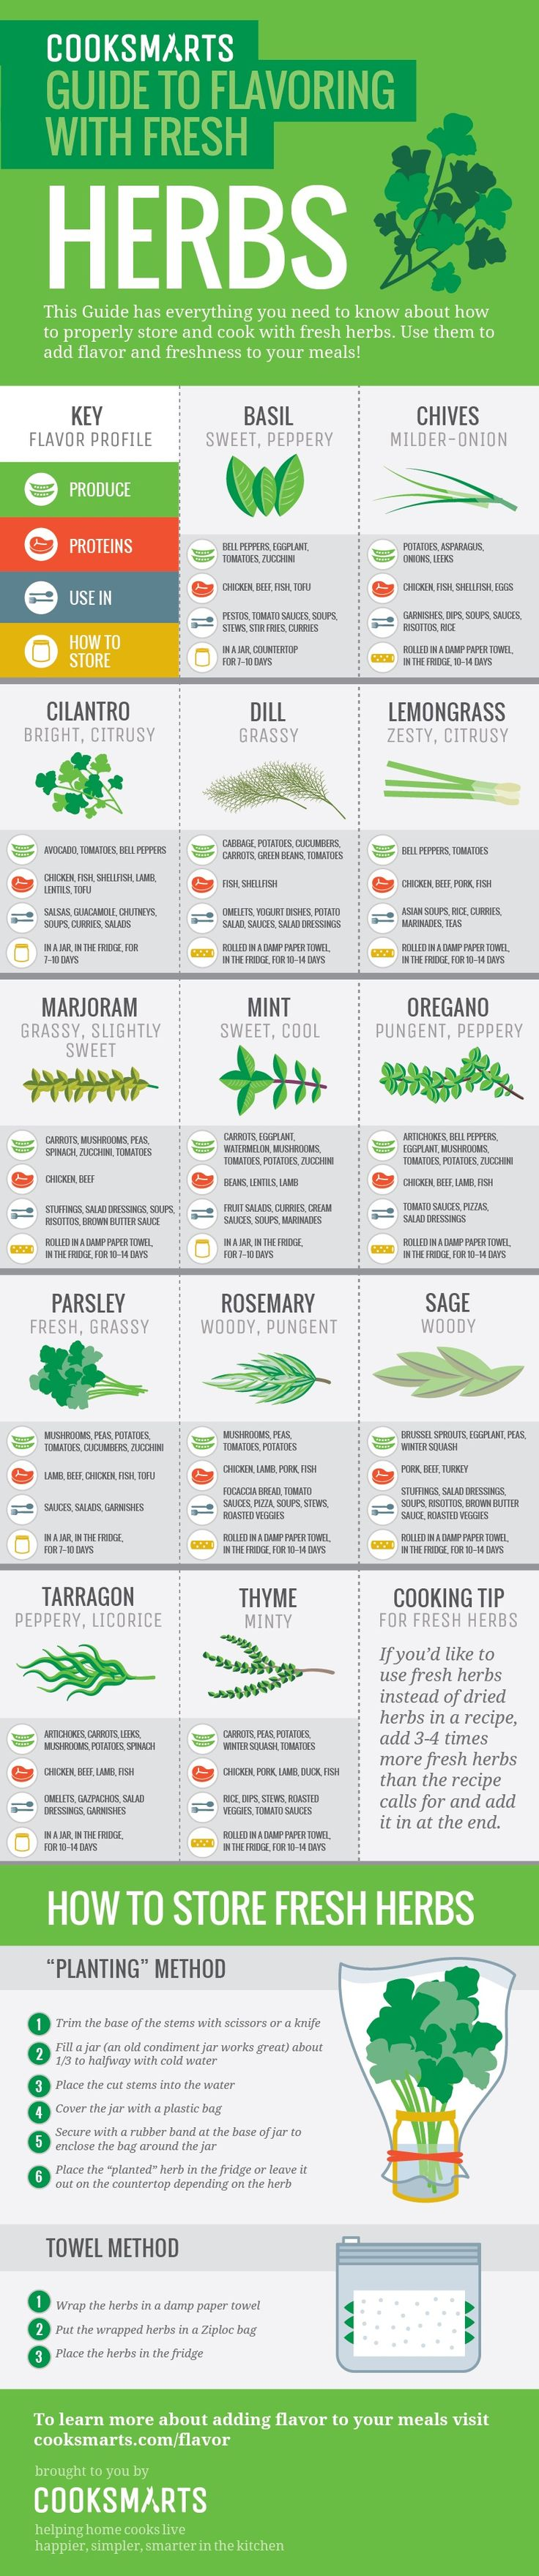 Infographic: Guide To Cooking And Flavoring With Fresh Herbs - DesignTAXI.com